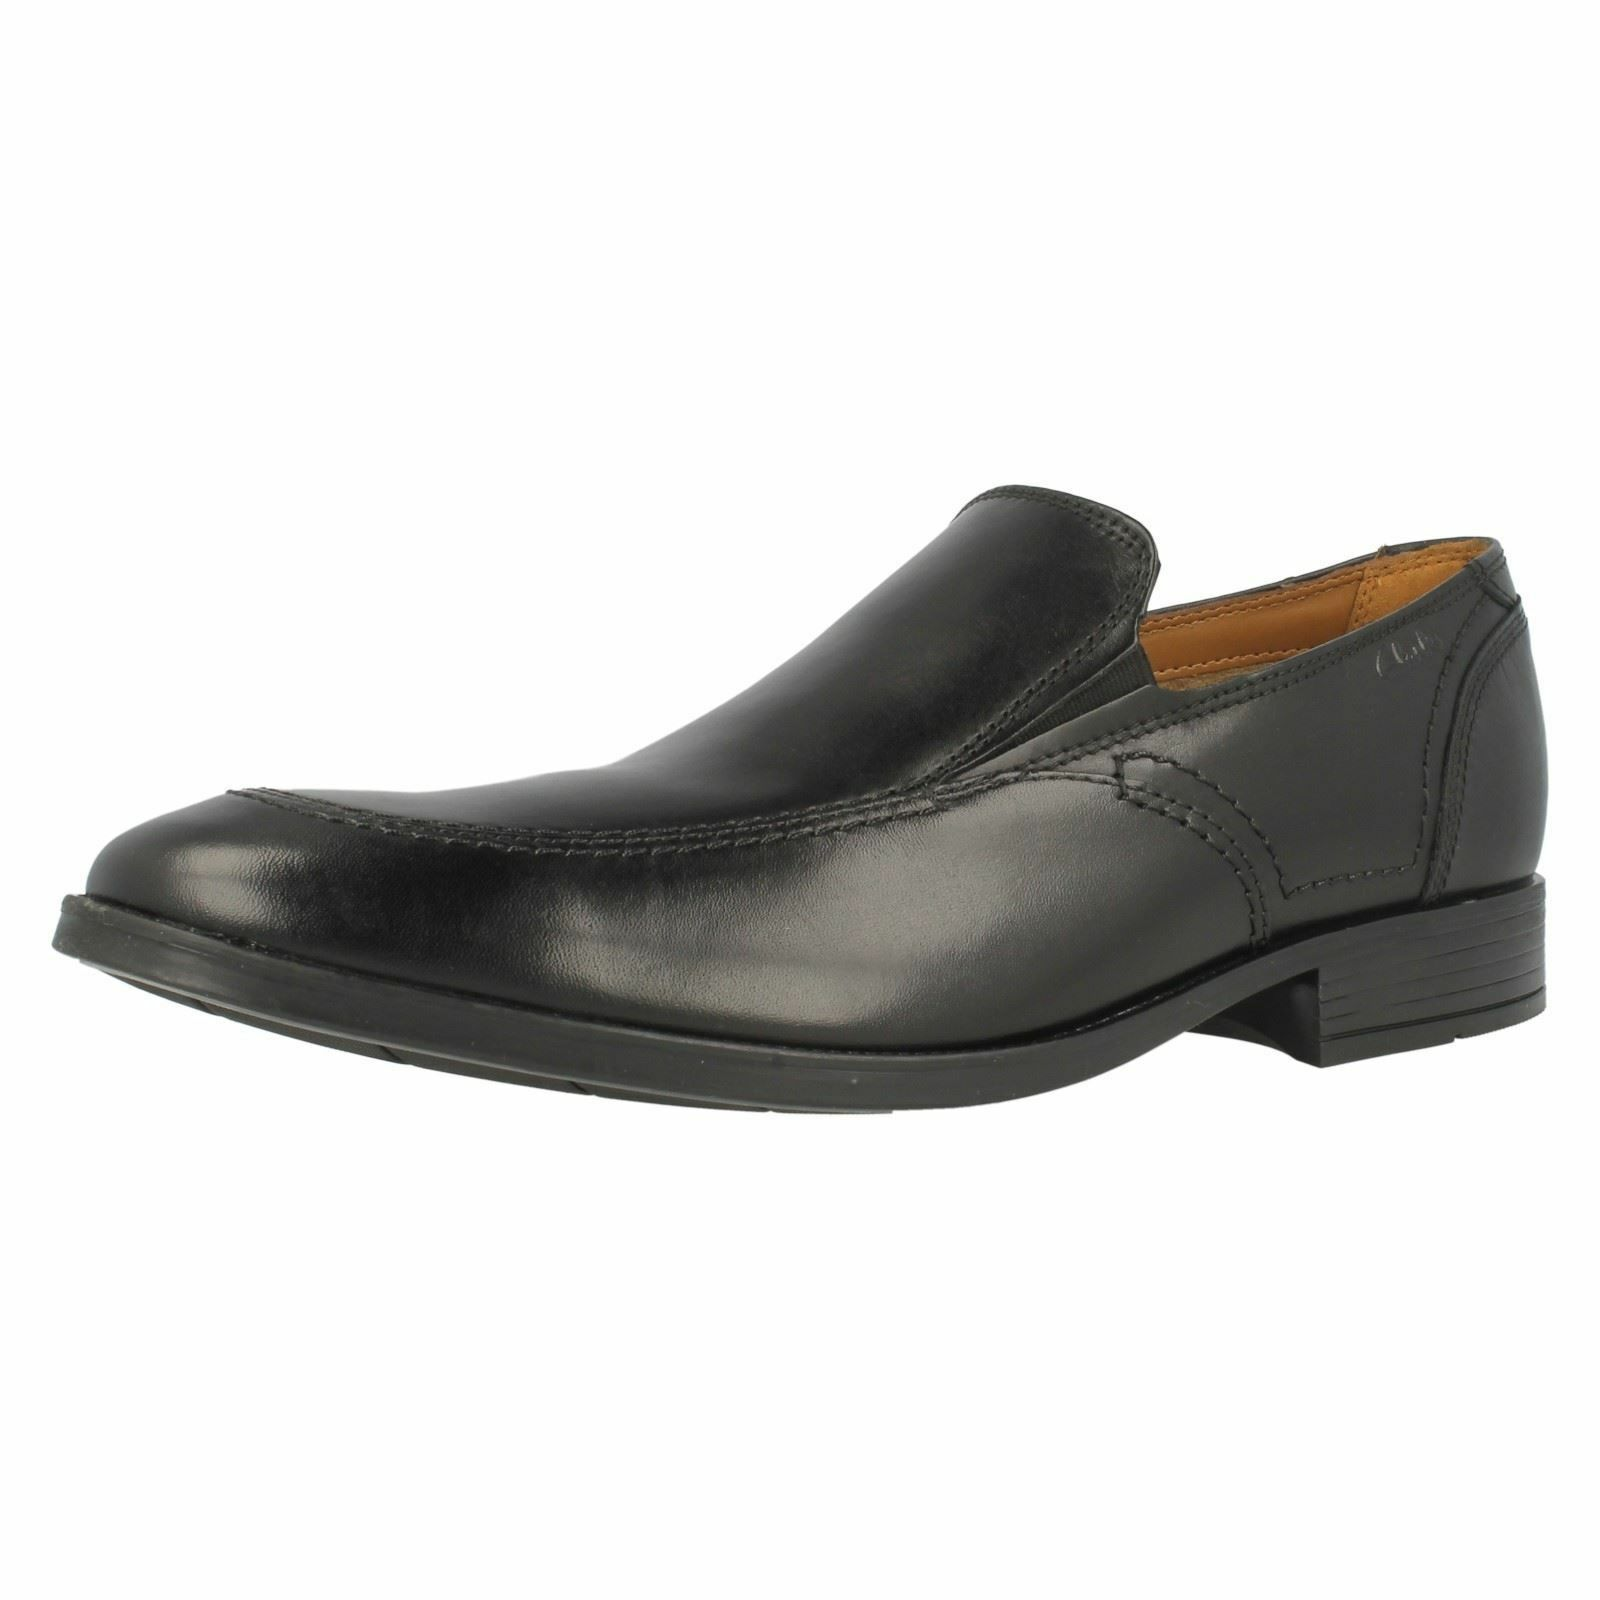 Mens Clarks Kalden Step Black Leather Smart Slip On shoes